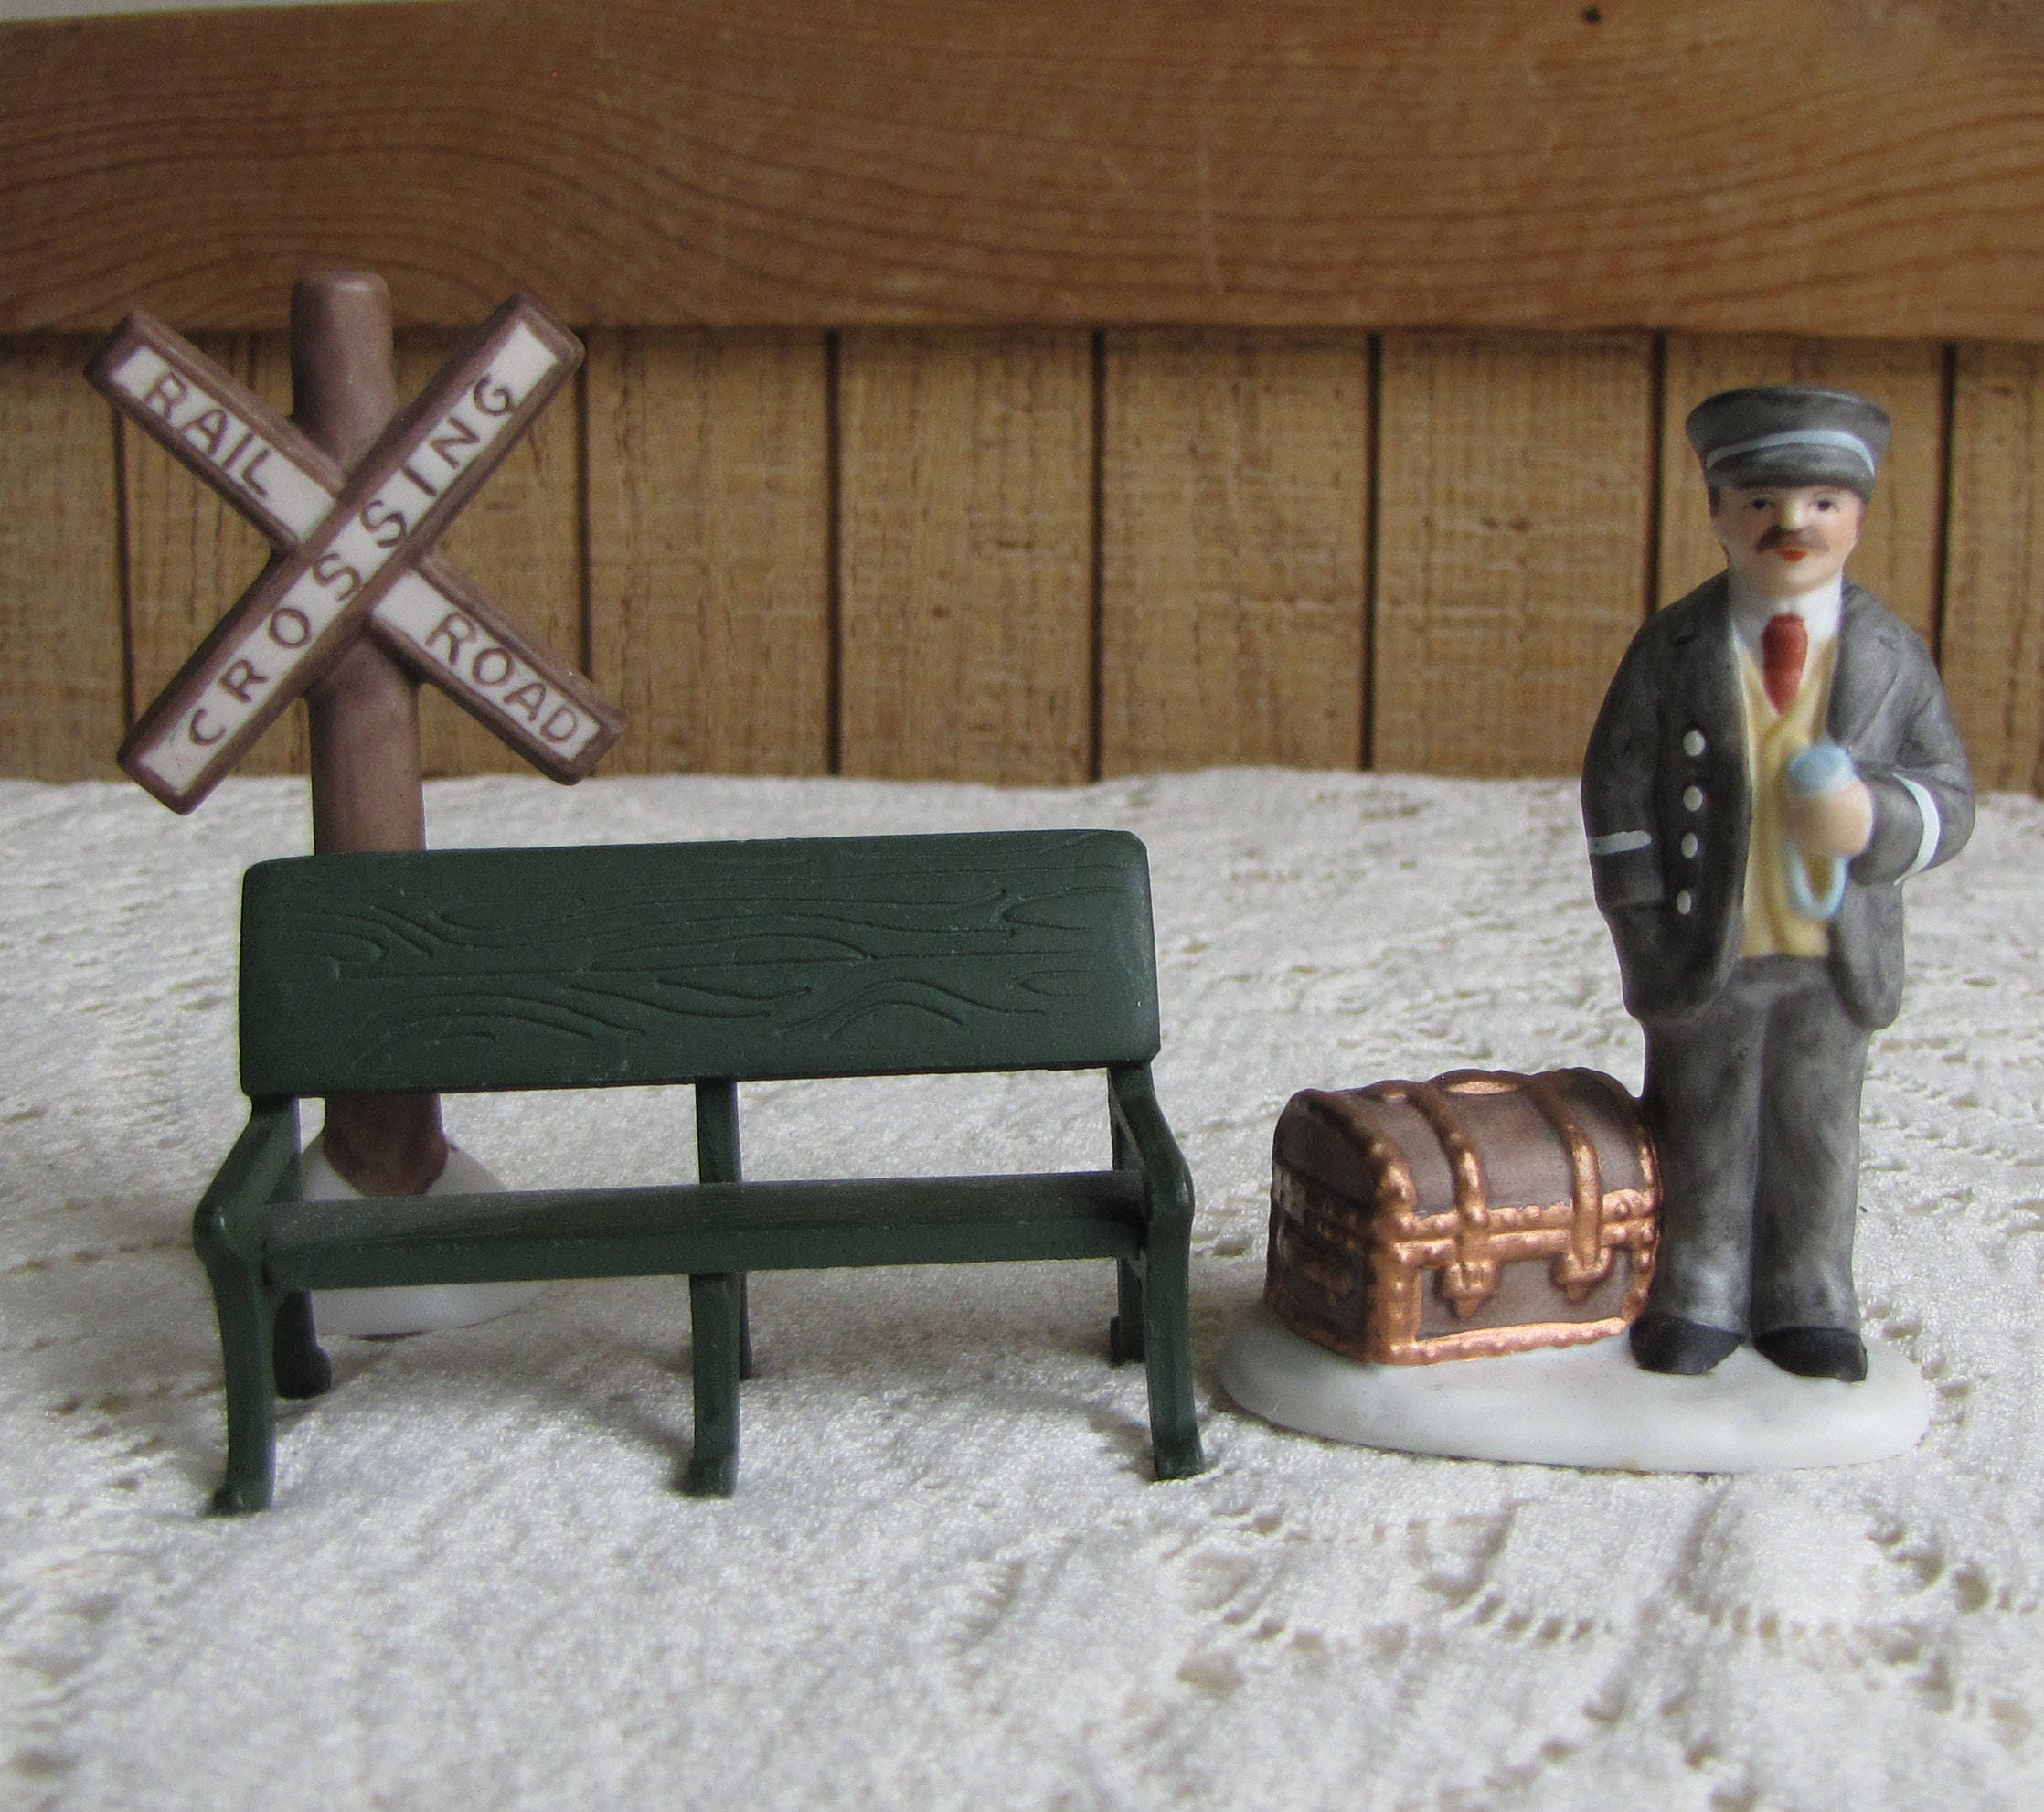 Lefton Station Master And Railroad Sign Bench Three 3 Piece Set Christmas Colonial Village Holiday Decor 1988 Figurines